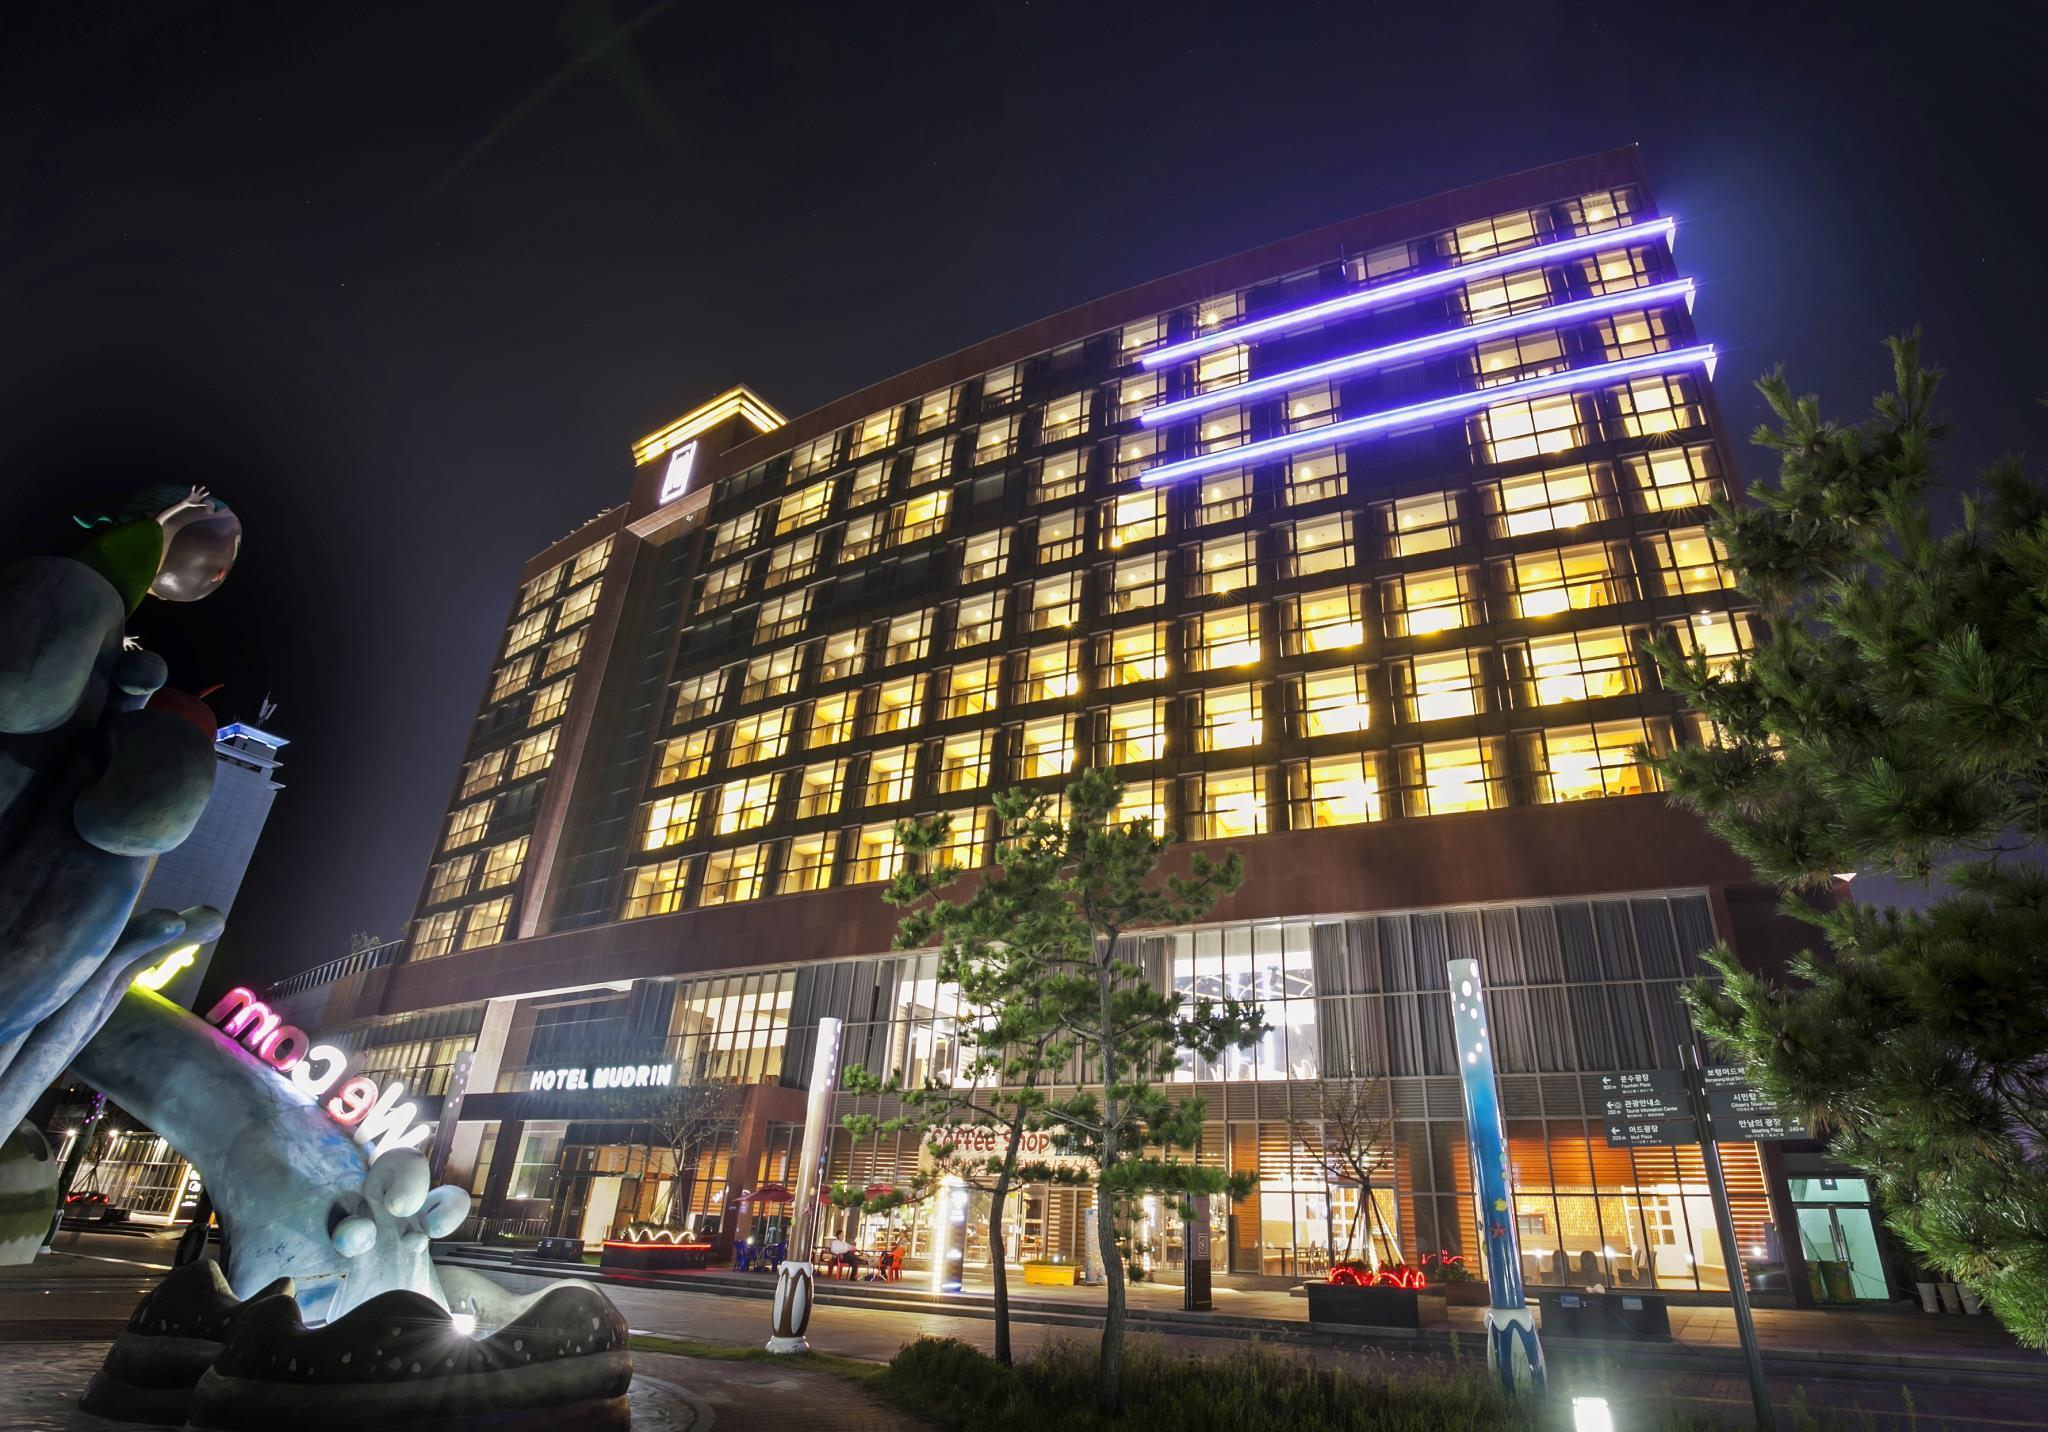 chungcheongnam province hotels best rates for hotels in rh agoda com